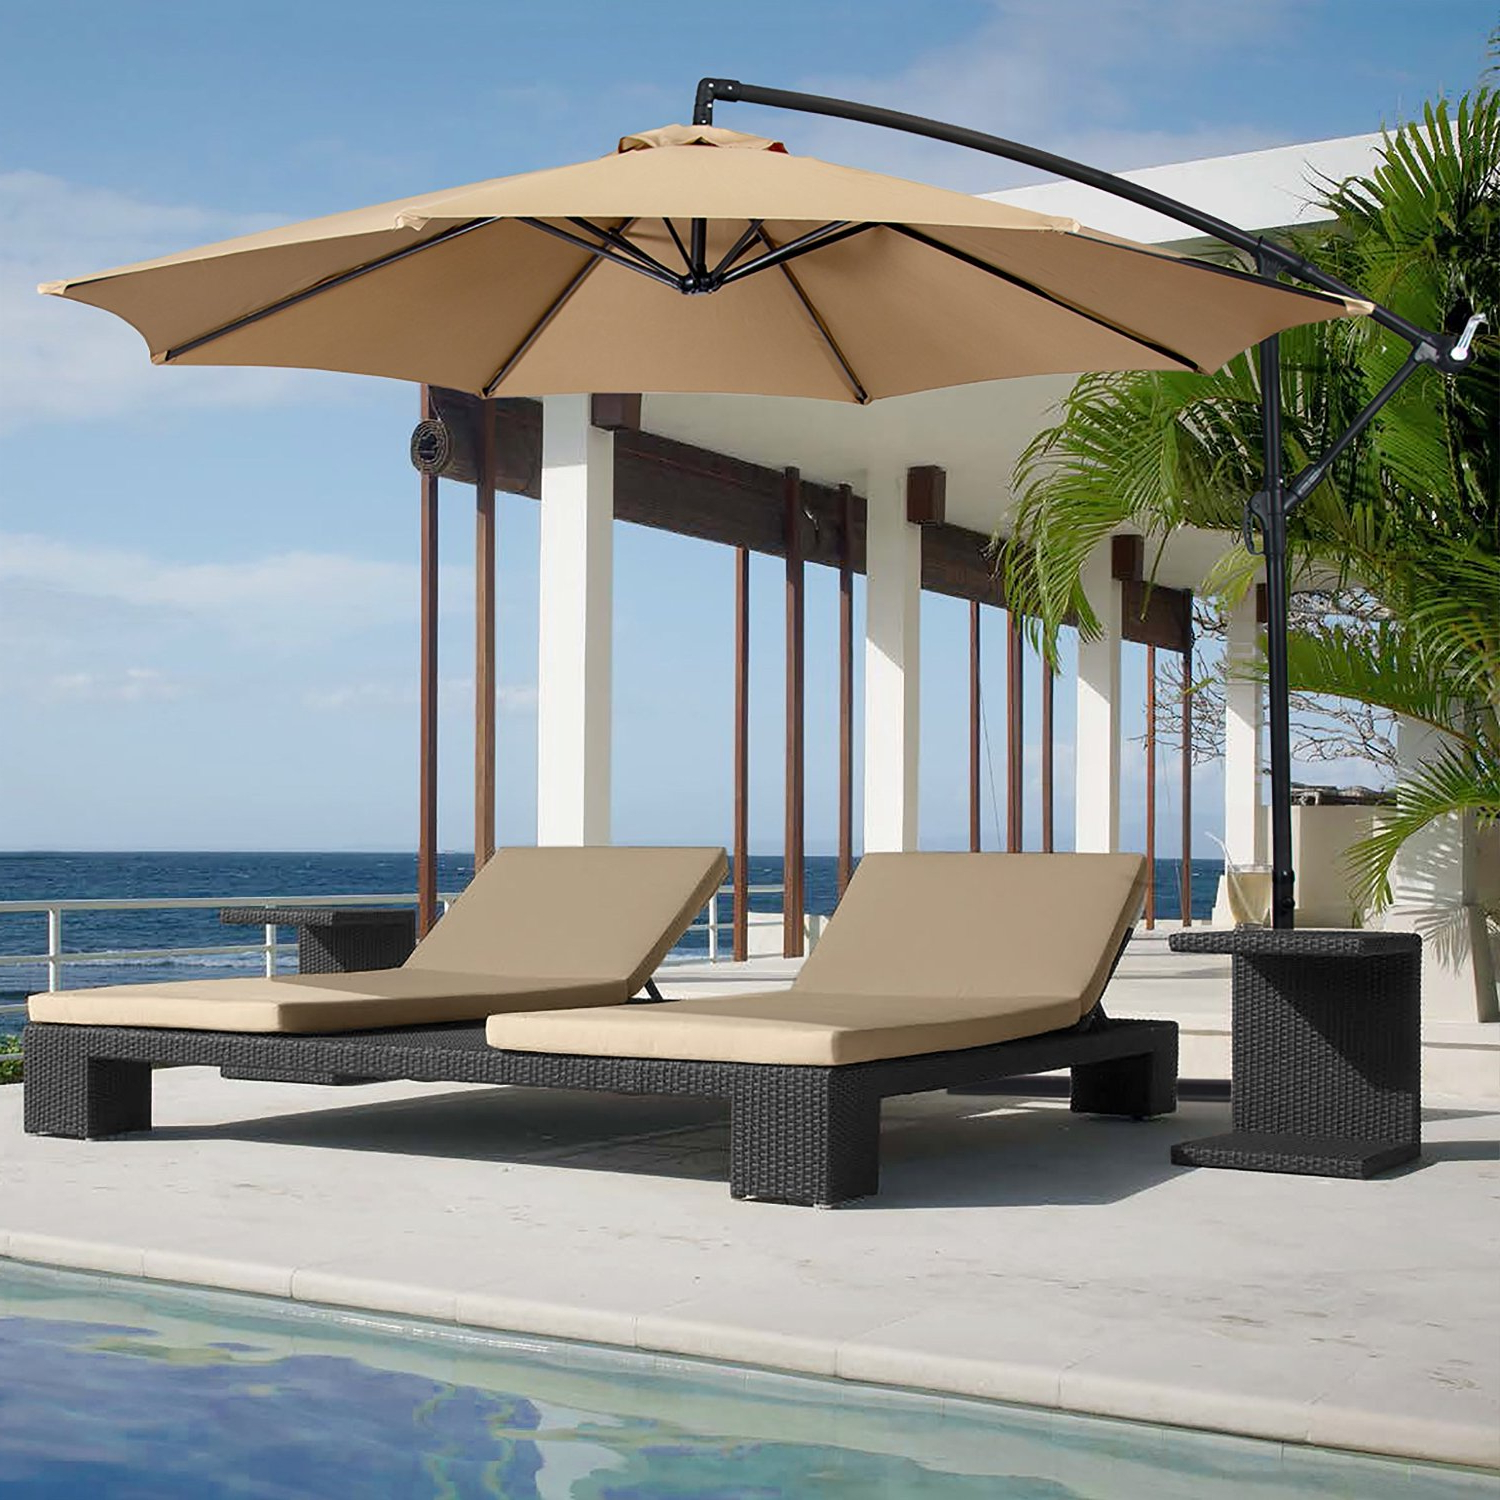 Outsidemodern With Regard To Mald Square Cantilever Umbrellas (View 19 of 20)